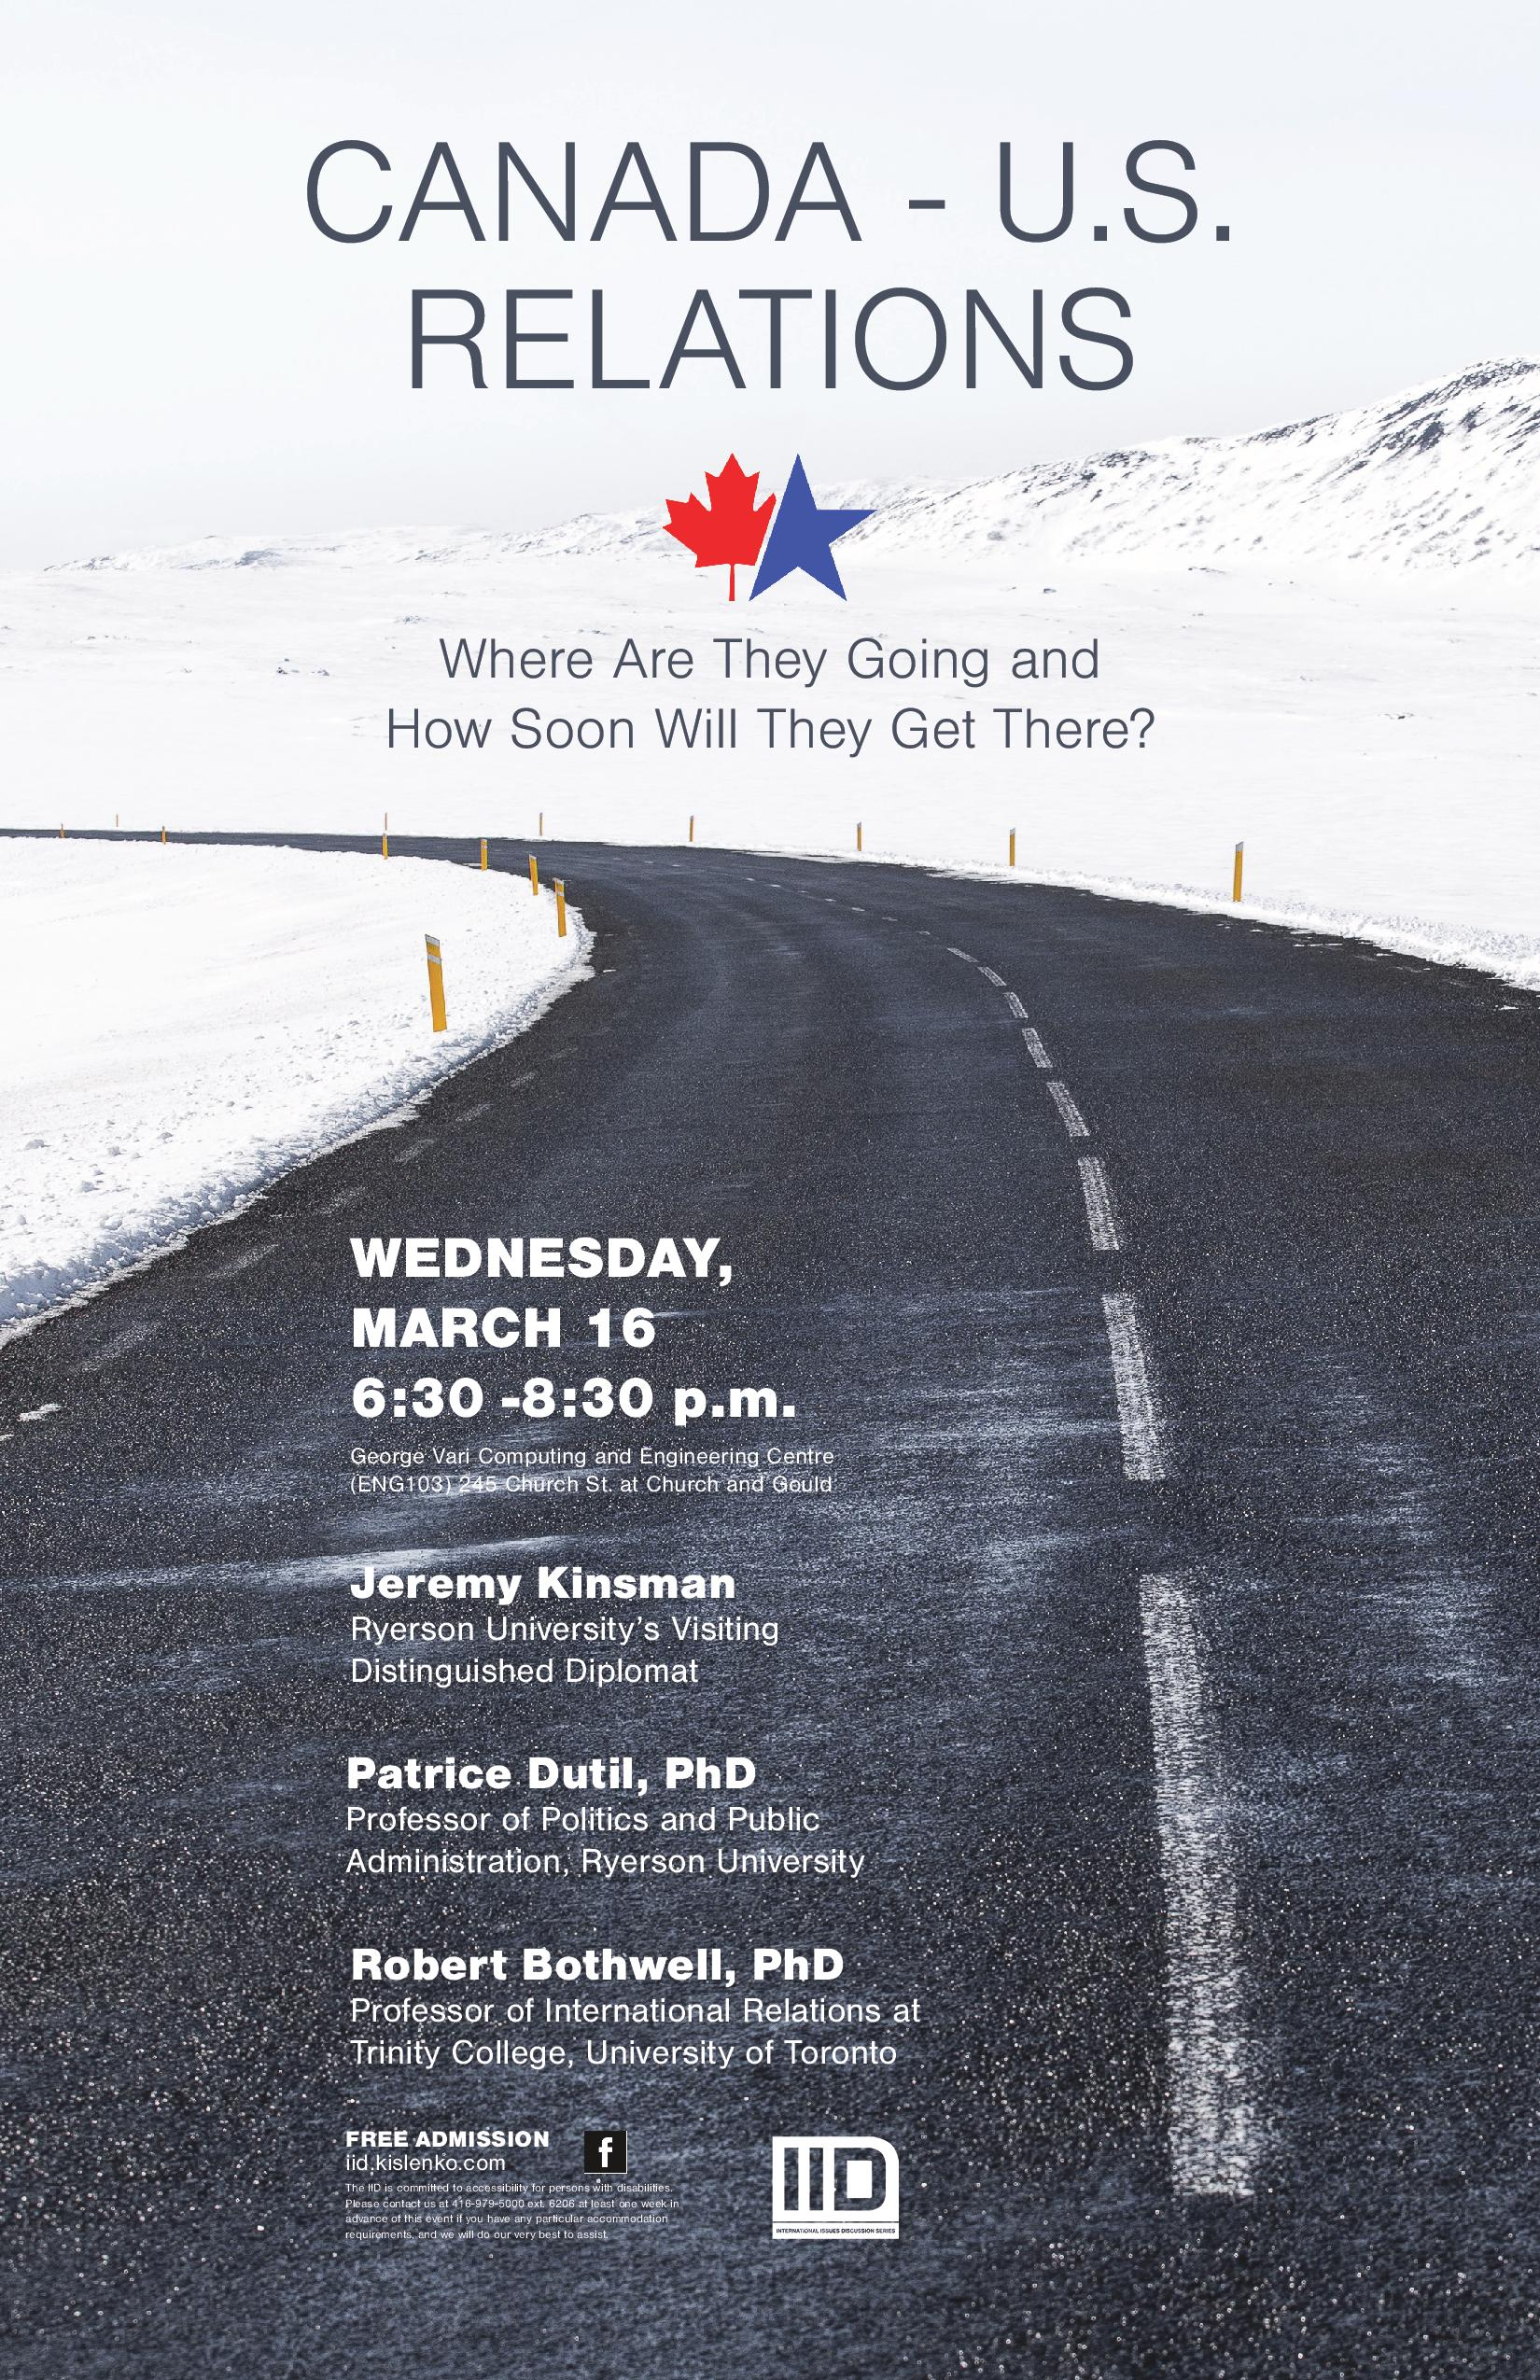 Canada and U.S. Relations—Where Are They Going and How Soon Will They Get There?—Wednesday, March 16